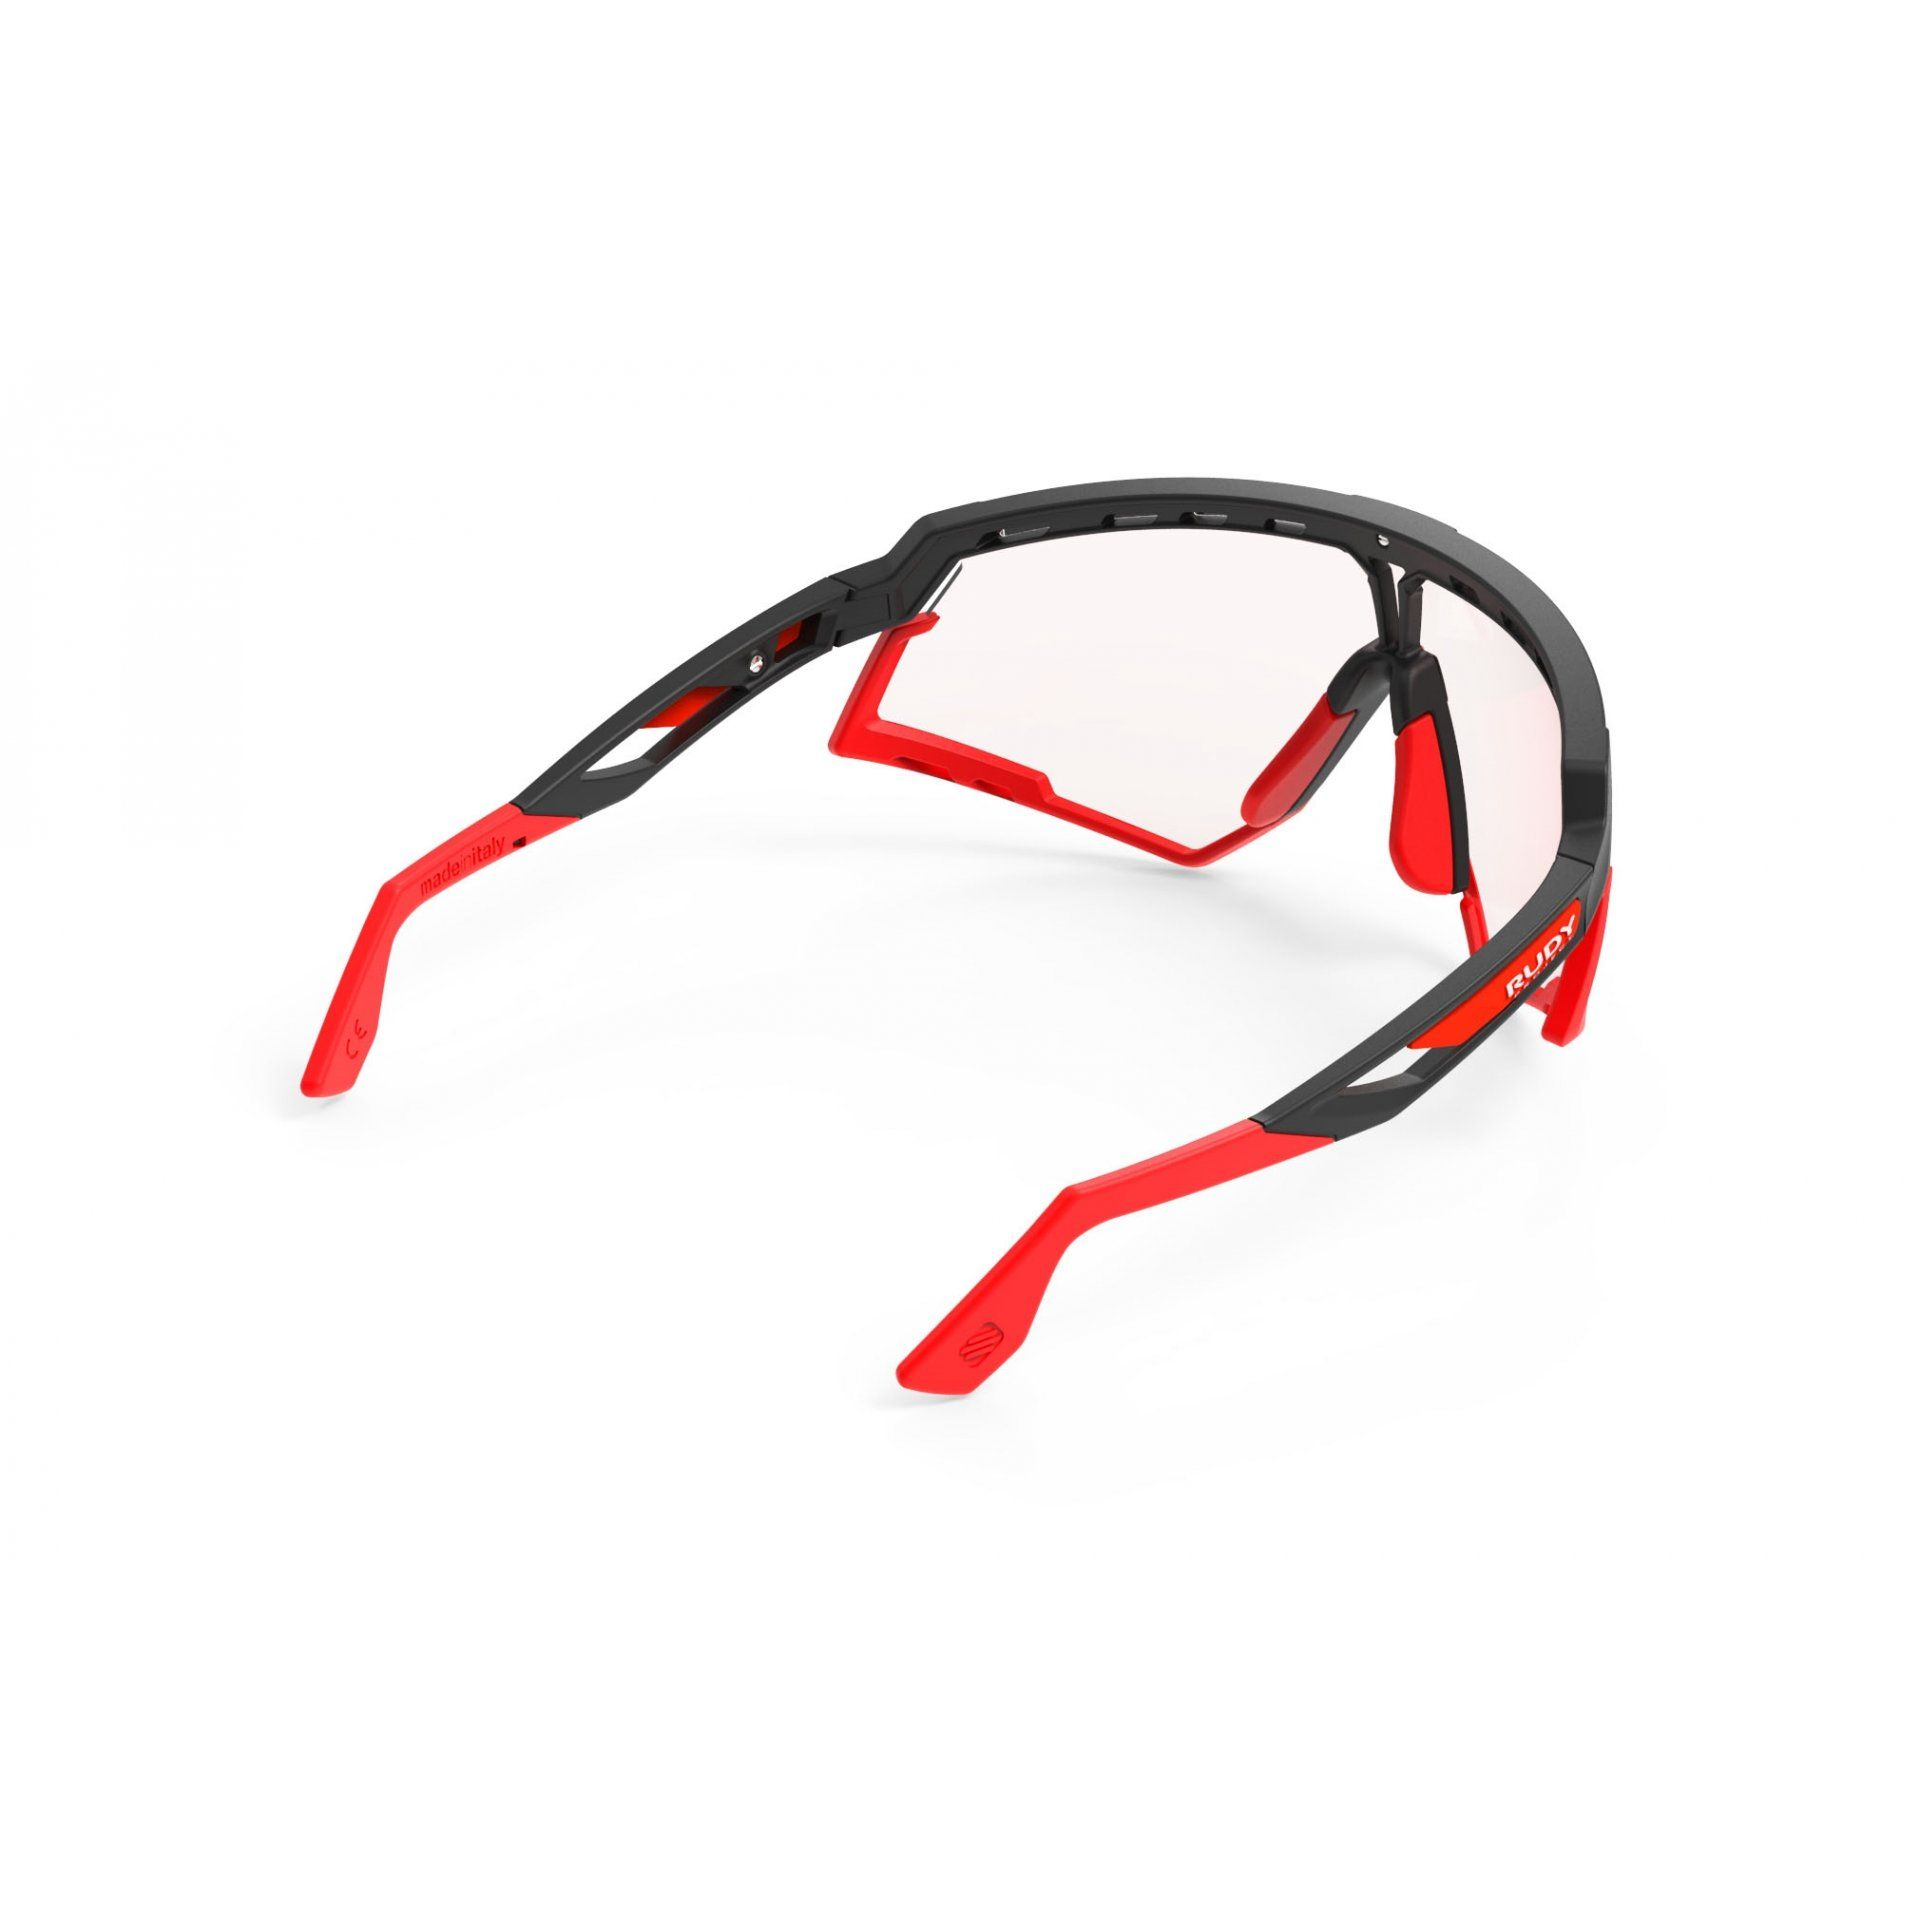 OKULARY RUDY PROJECT DEFENDER BLACK MATTE+PHOTOCHROMIC RED 5